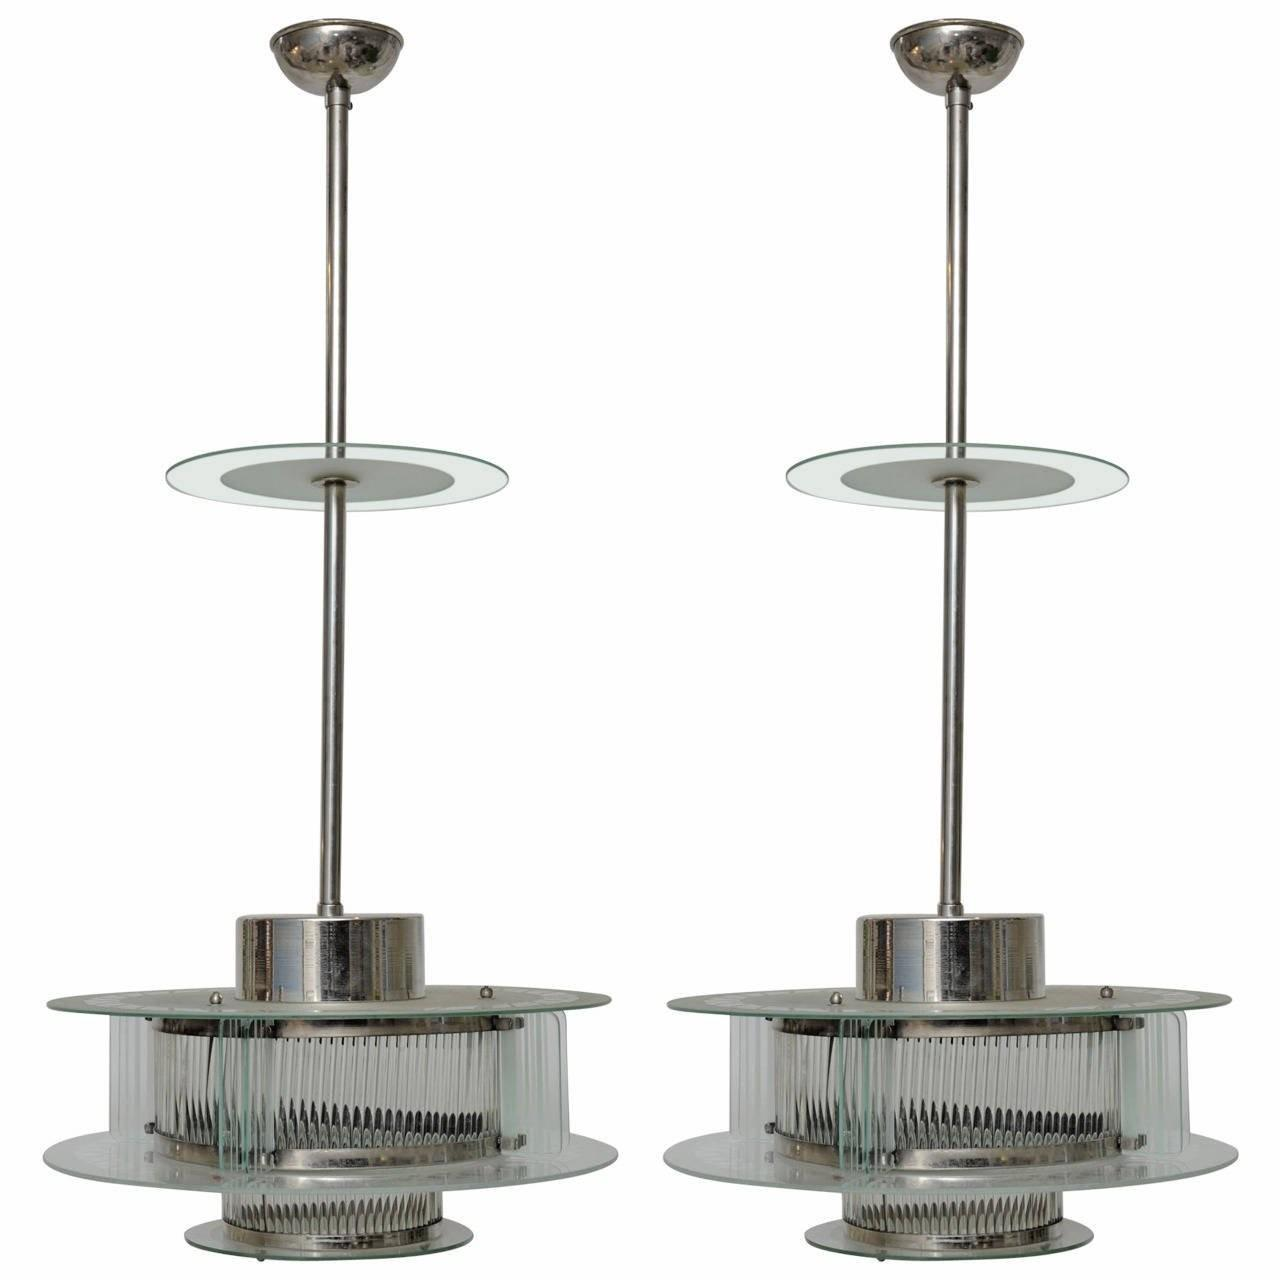 Rare Pair Art Deco Light Fixtures Iconic Metro